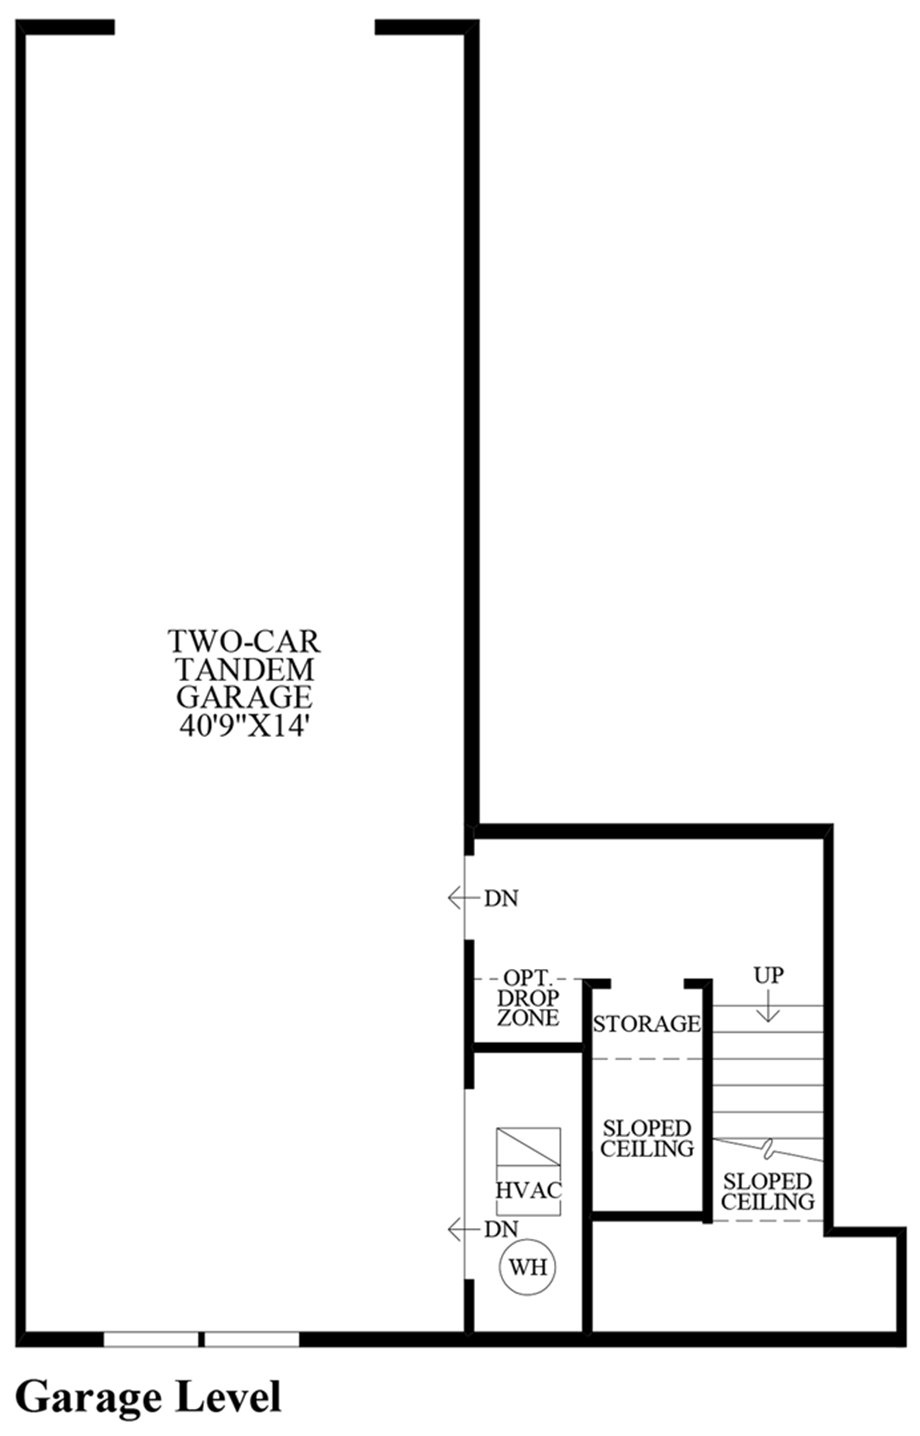 Garage Level Floor Plan